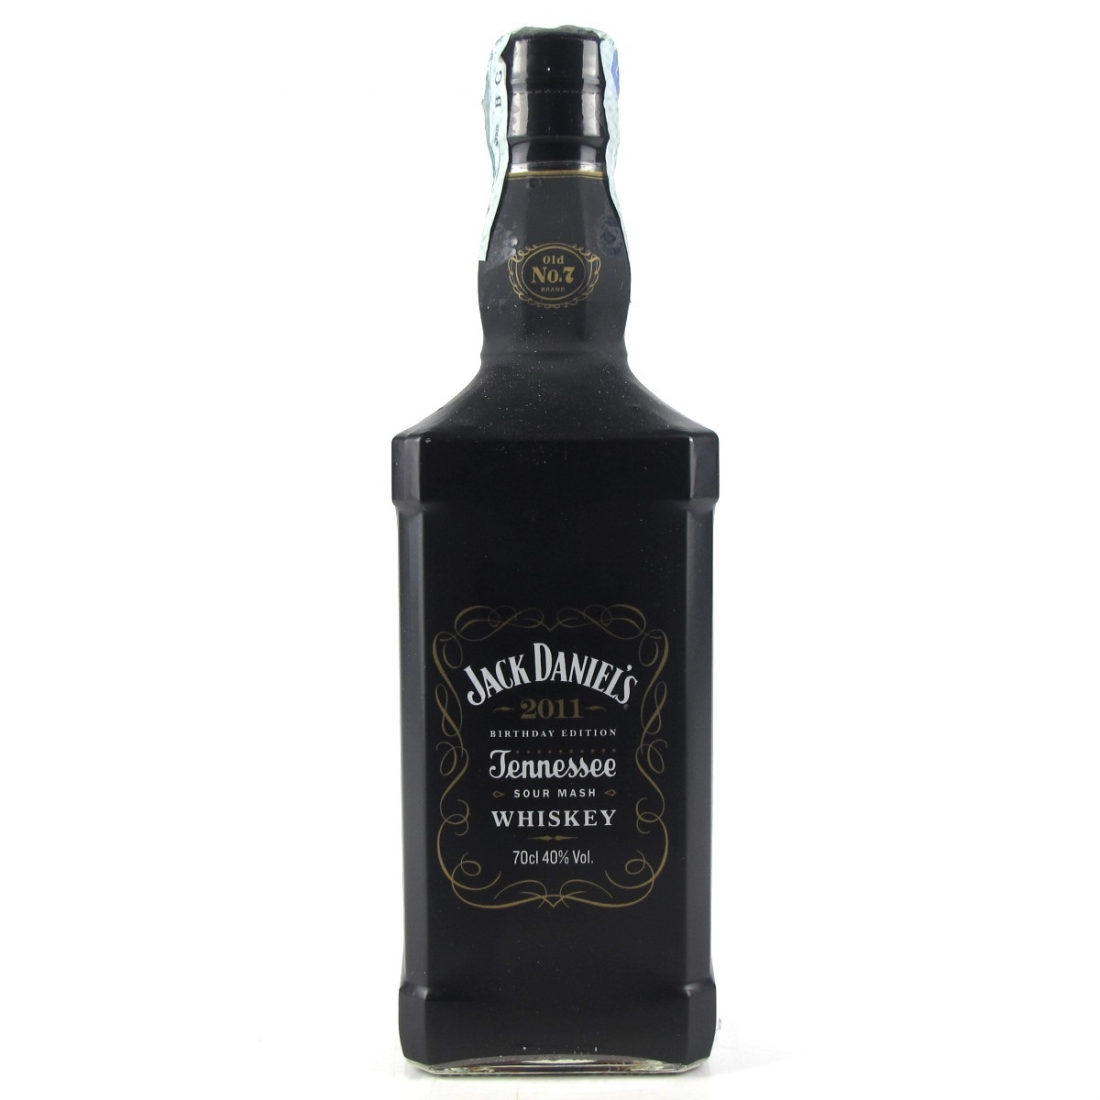 Jack Daniel's 2011 Birthday Edition